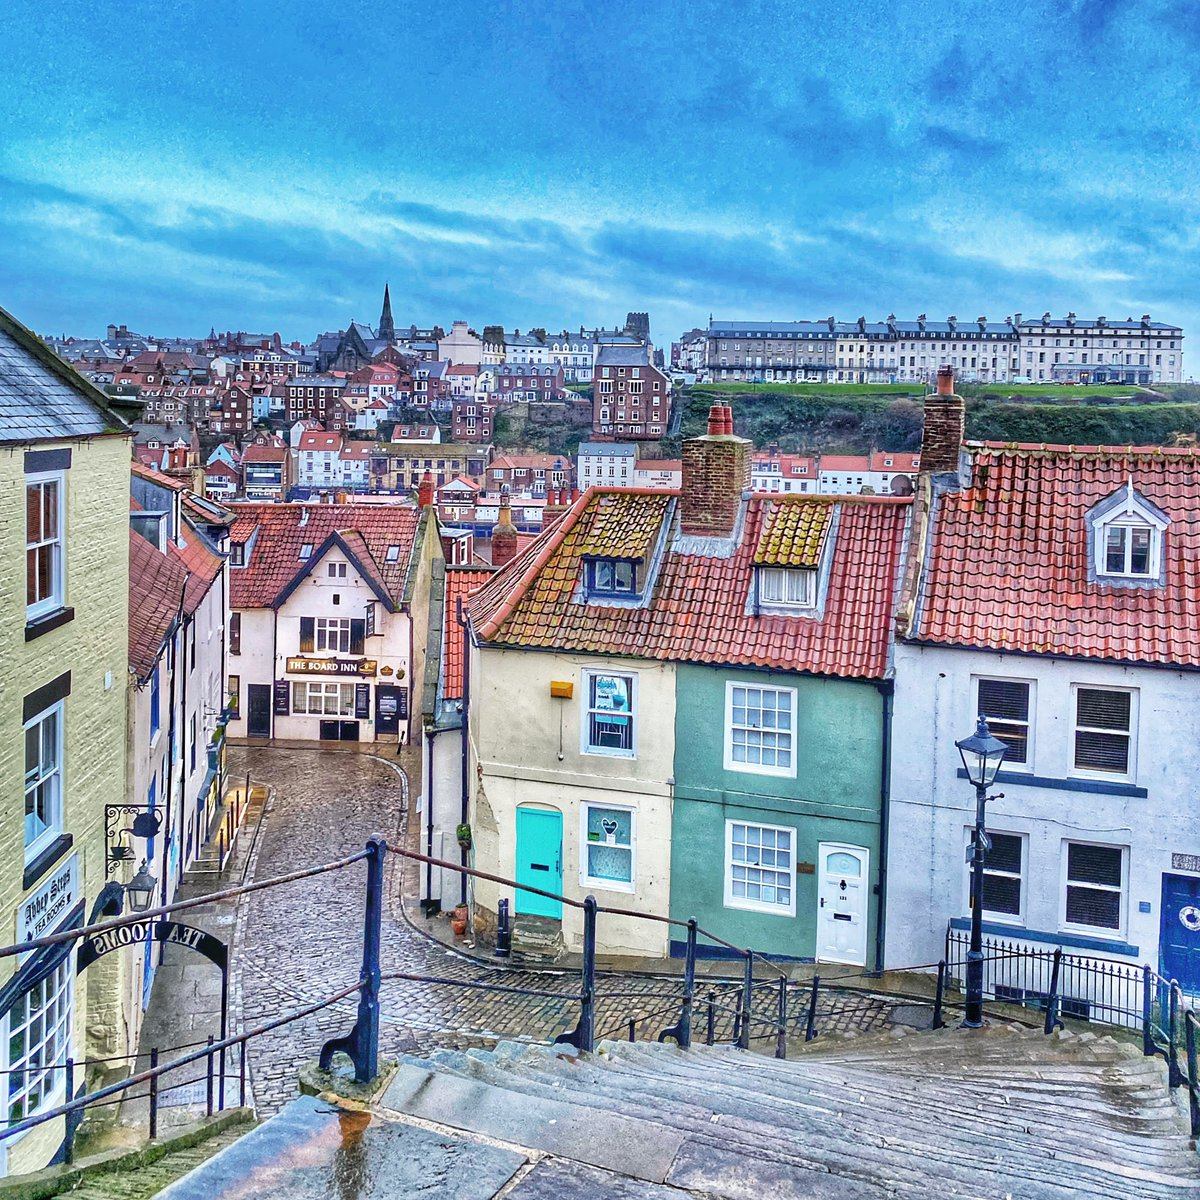 'Somewhere on your journey, don't forget to turn around and enjoy the view' #Whitby #thismorning #tuesdayvibe #stepbystep #view #artyfilter